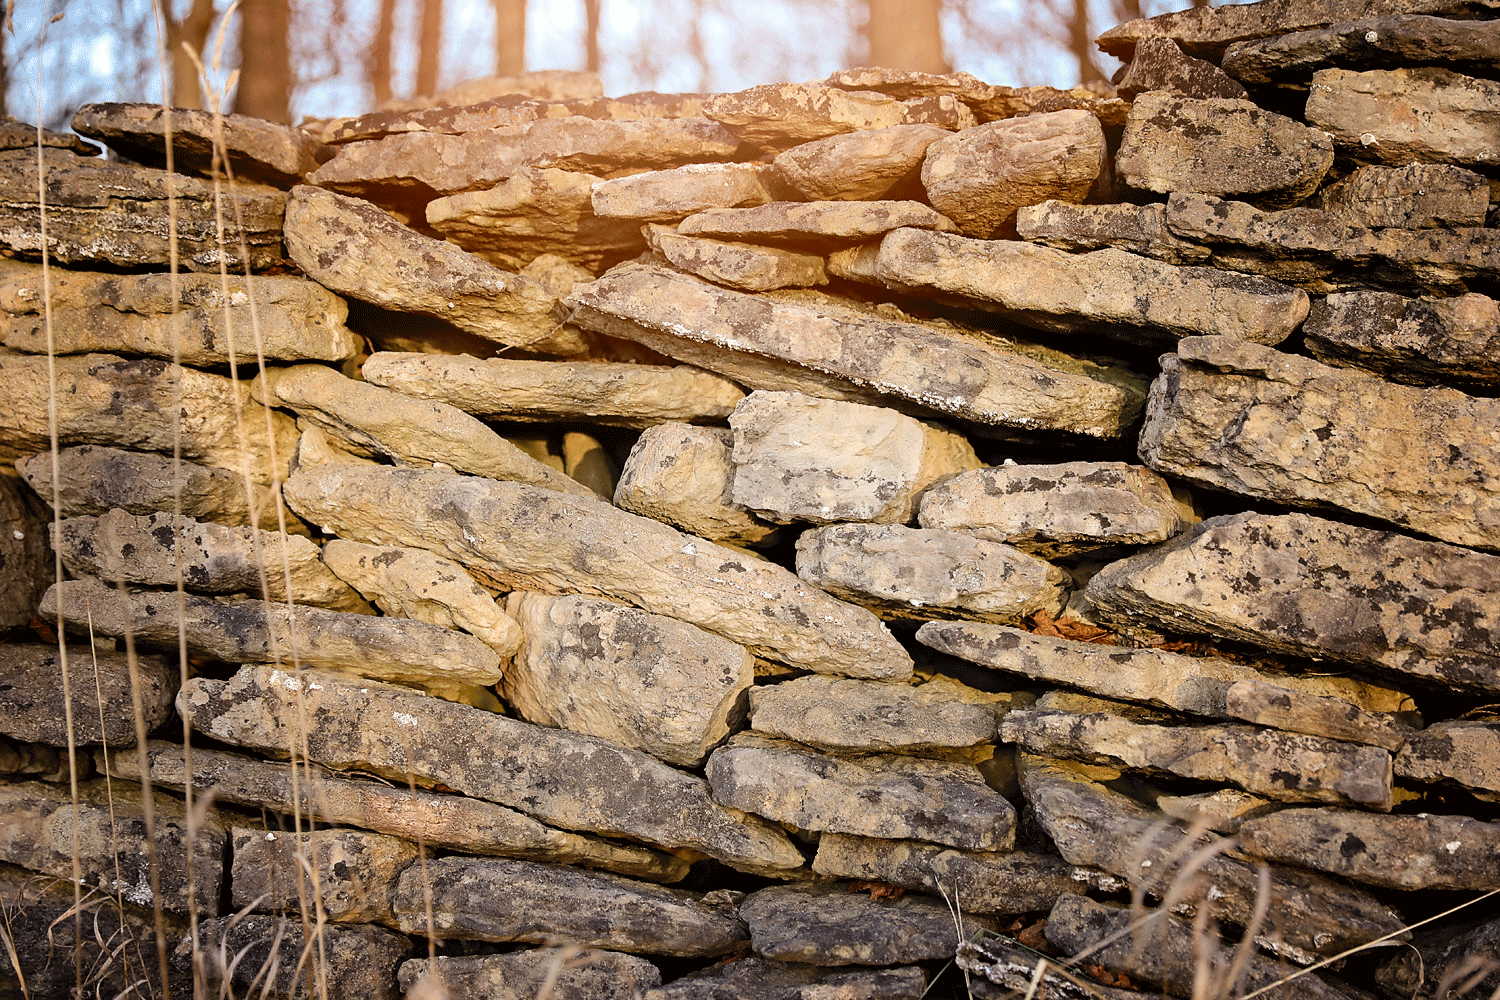 the farmer's wall - If you are so inclined, a hike or ride to the lower portion of our property will bring you to this phenomenal stone wall, built over 140 years ago. It was used to contain cattle in the pasture. At around 300m long, it is mind boggling to try to imagine the amount of labour it took to construct. It is a wonderful spot to stop for a picnic lunch.